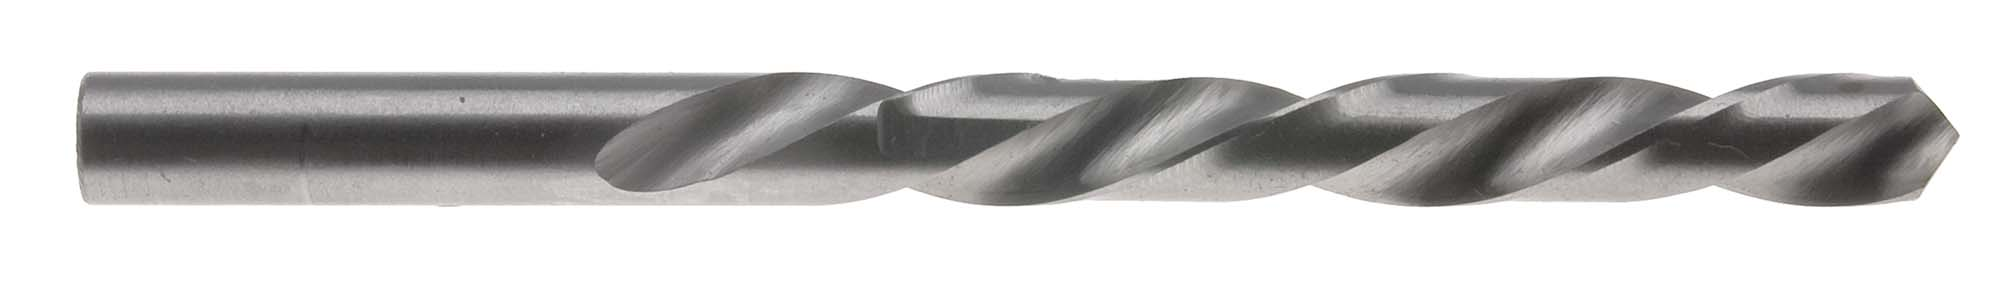 "#16 (.1770"") Left Hand Jobber Drill Bit, High Speed Steel"